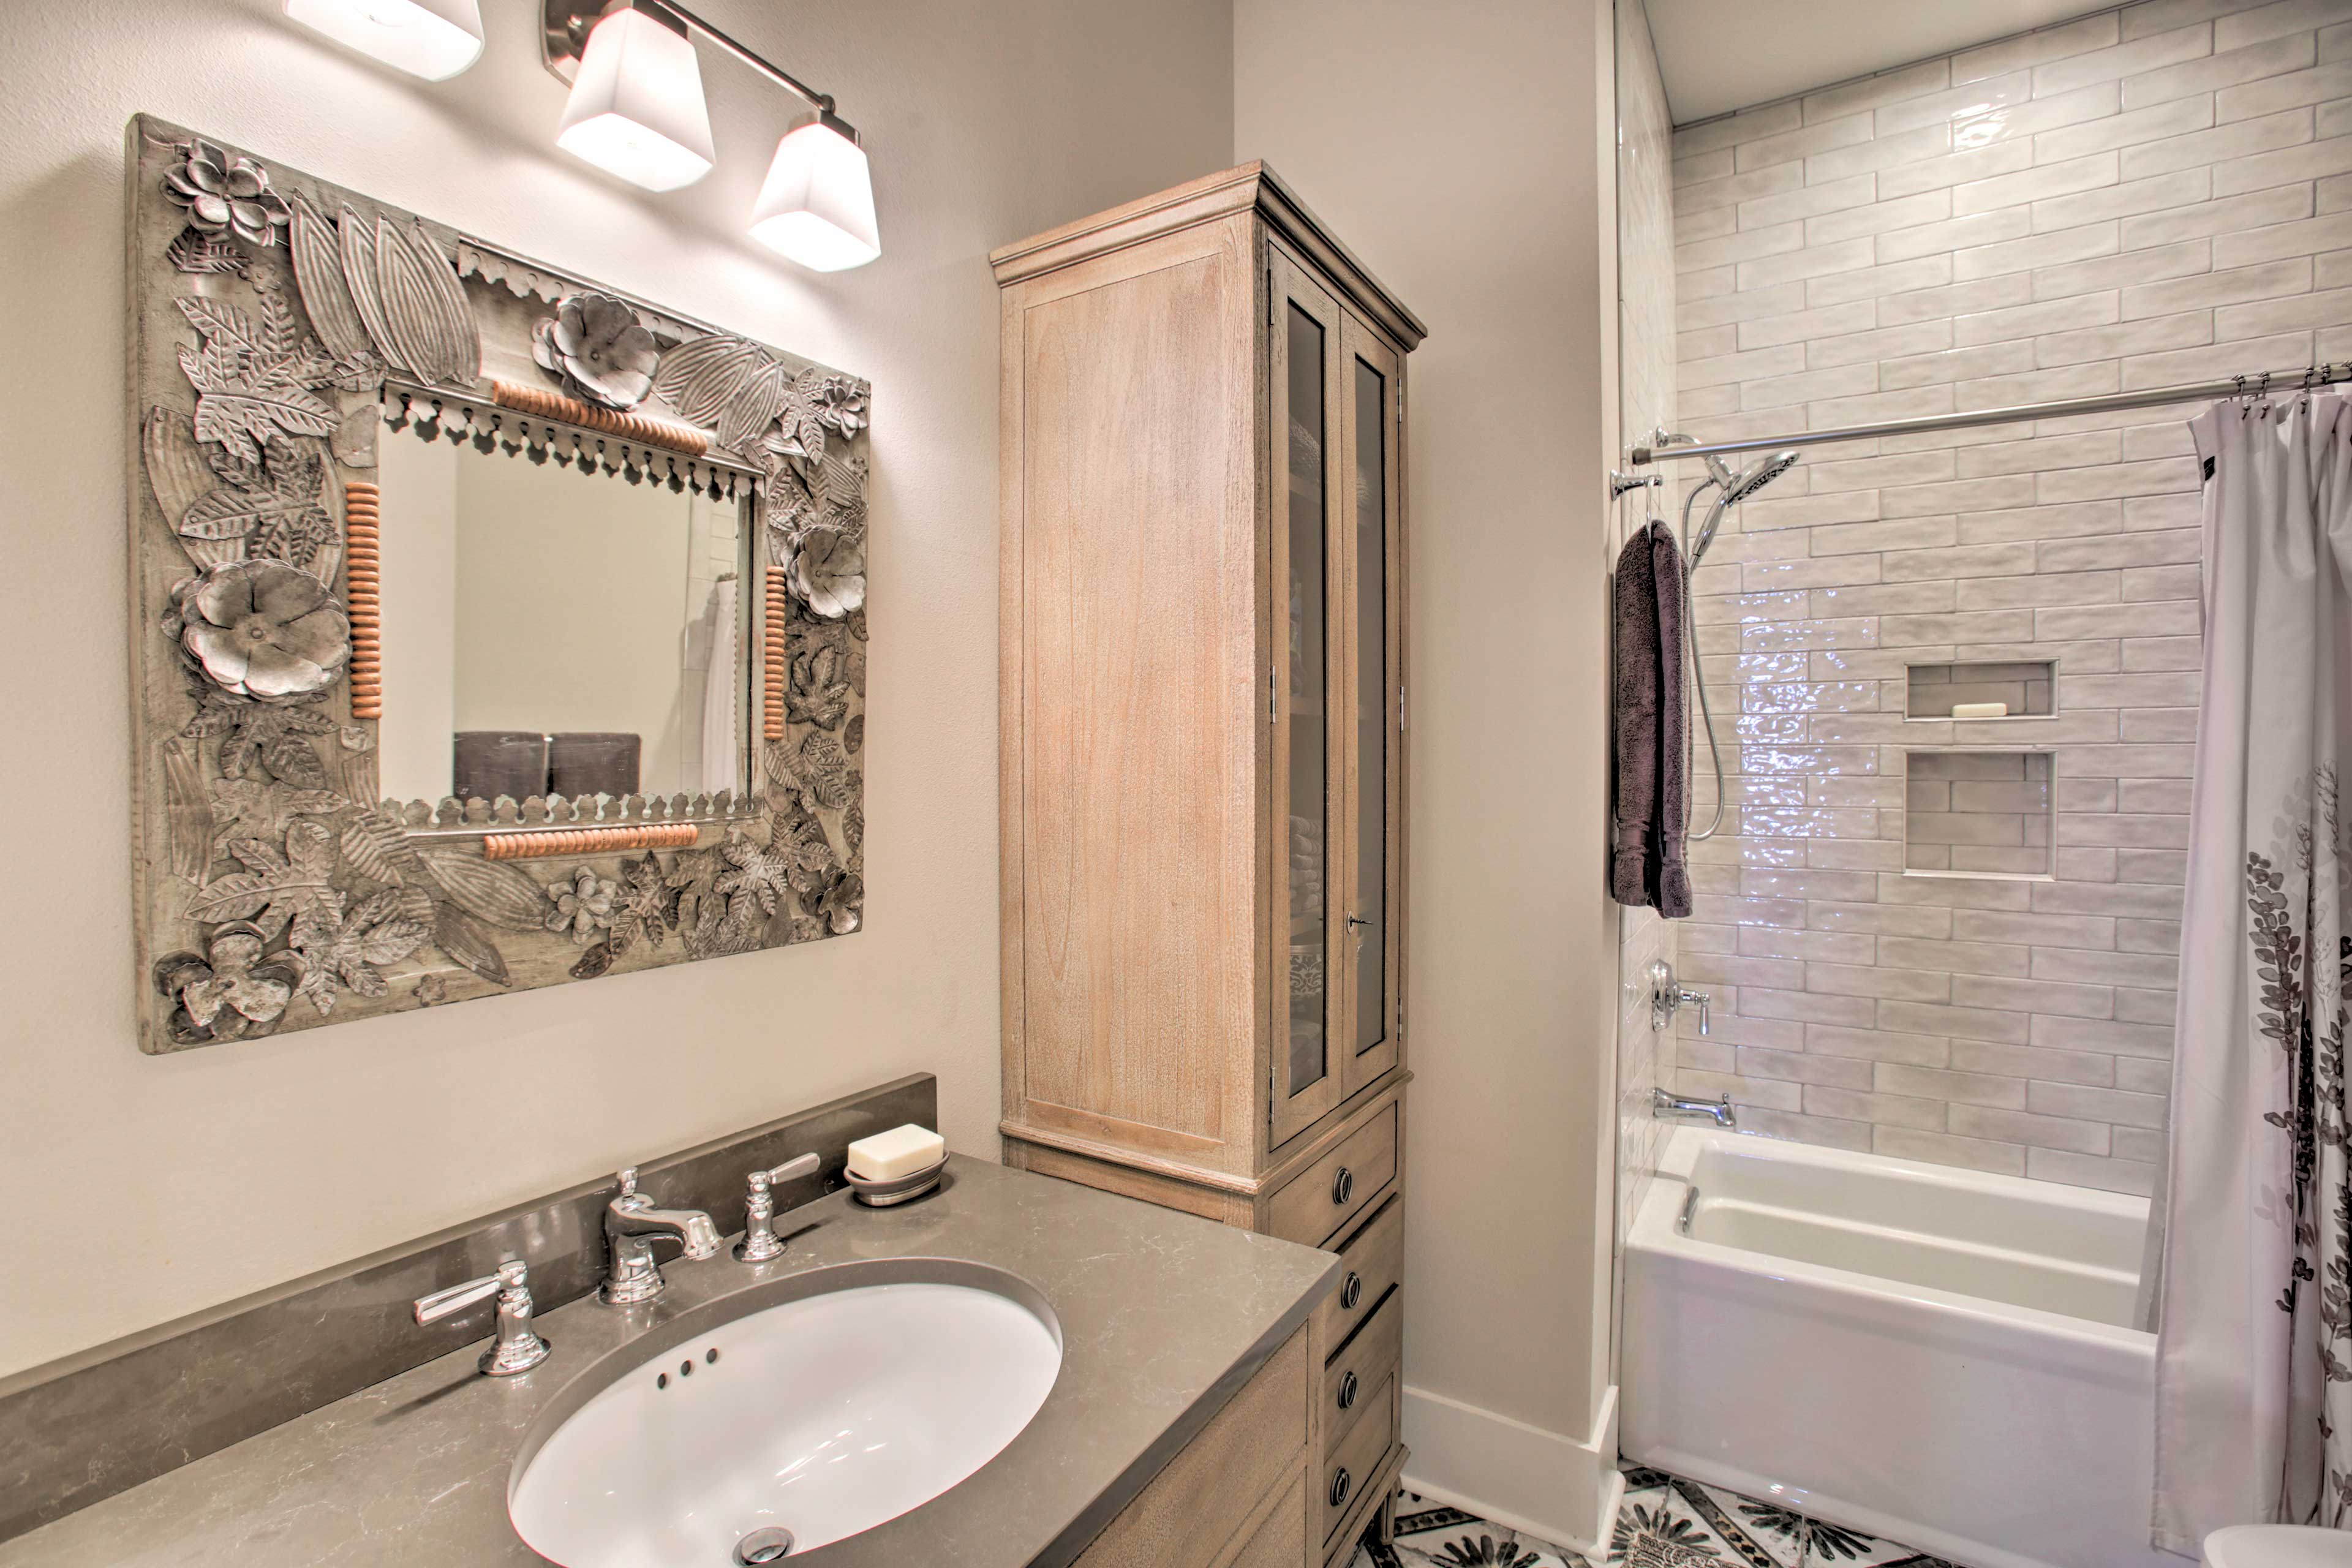 The second bathroom is outfitted with a shower/tub combo and sleek tiles.